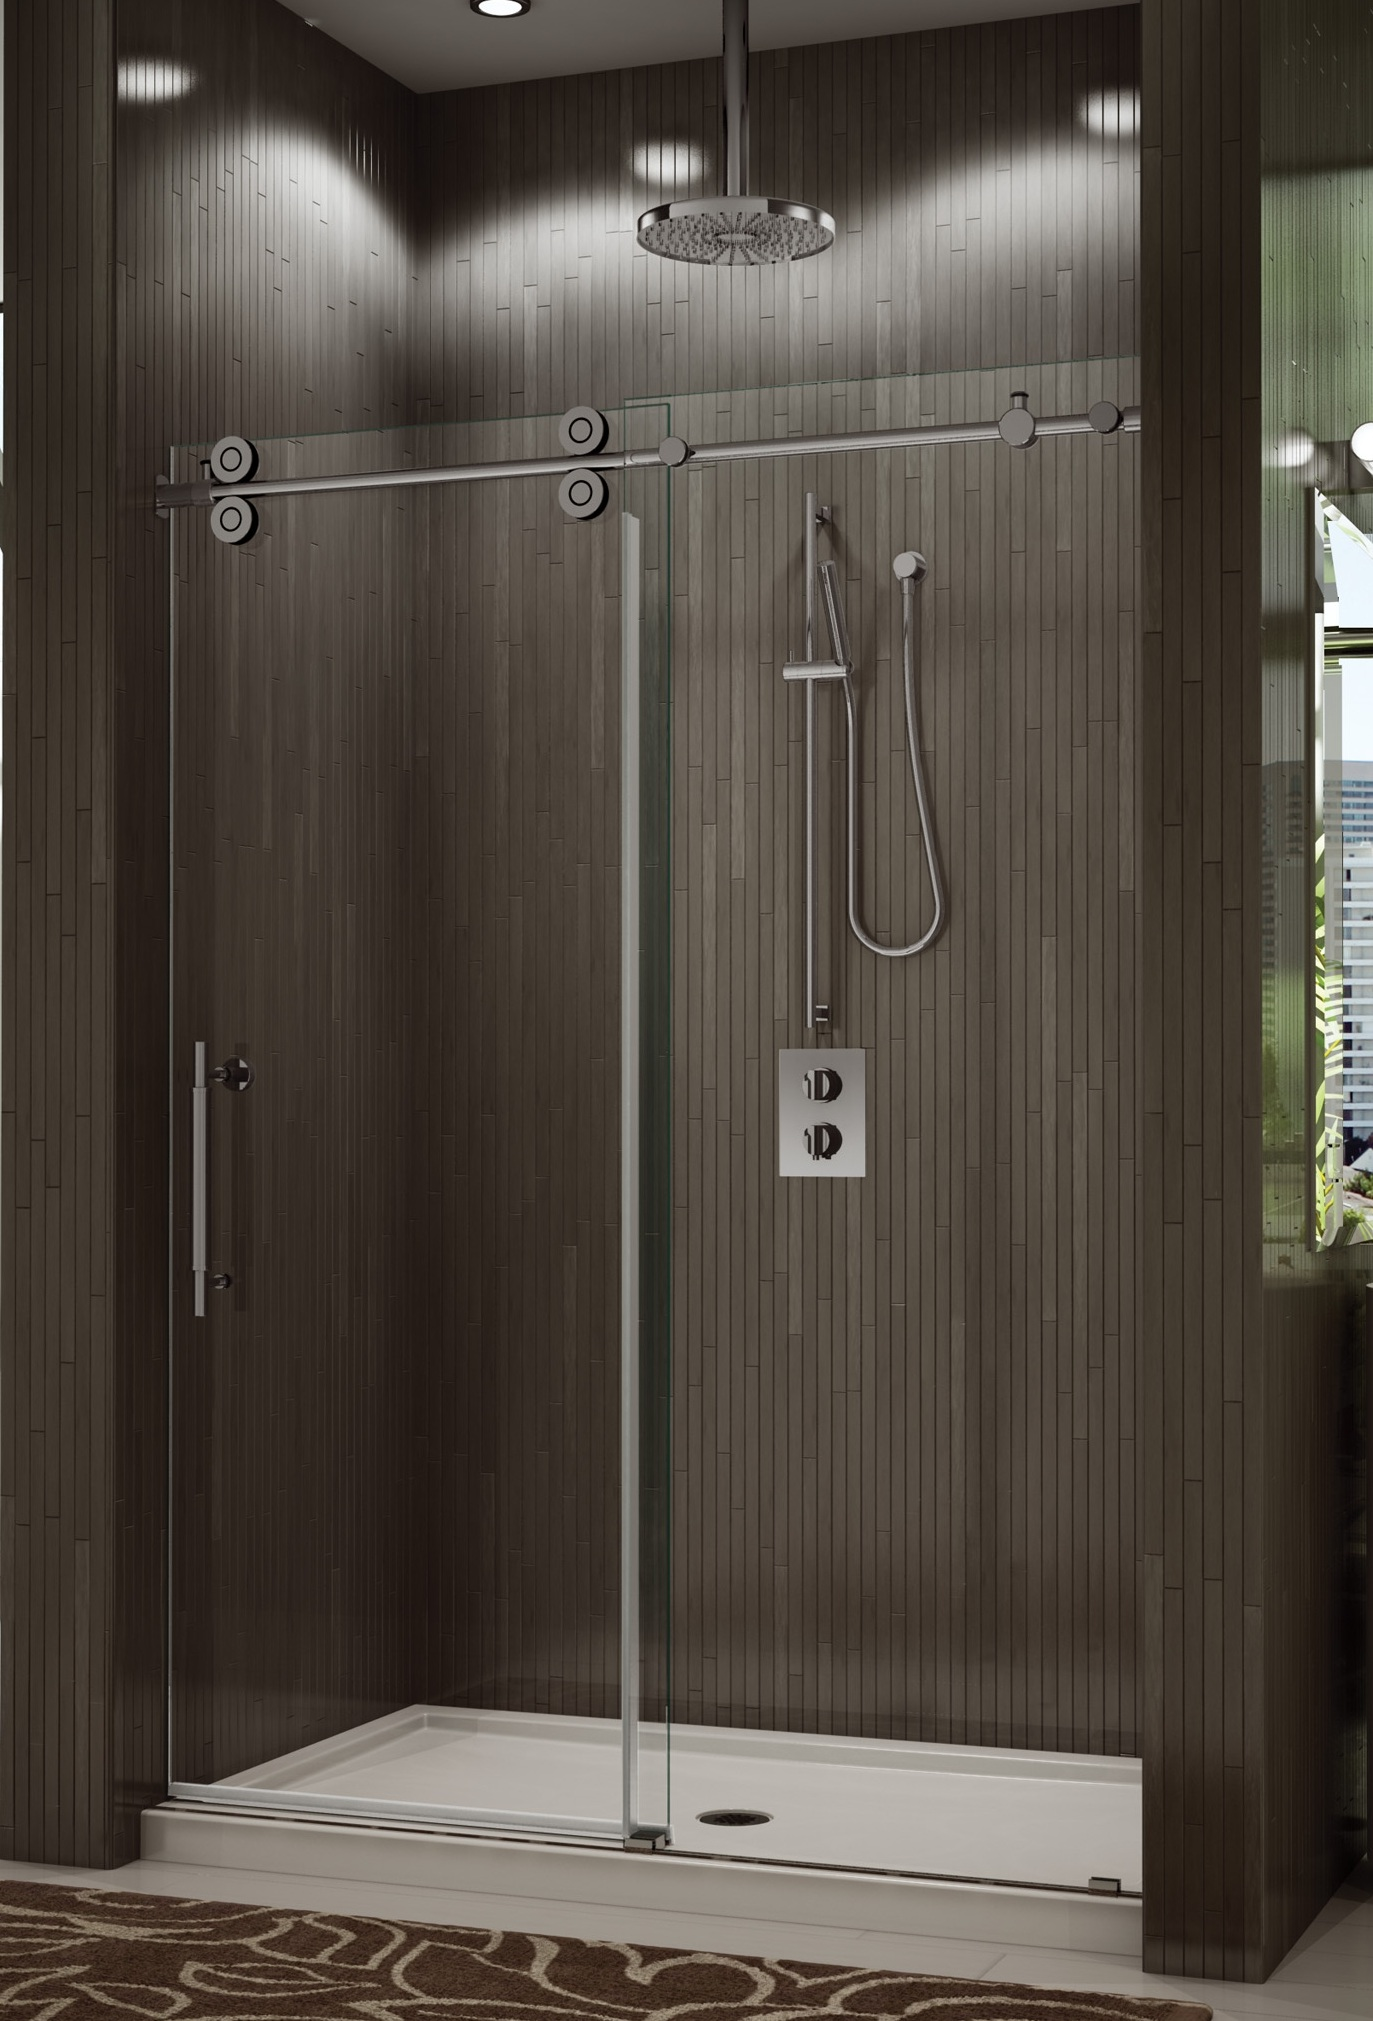 Shower Door Of Canada Inc Shower Enclosures Sliding Shower Doors